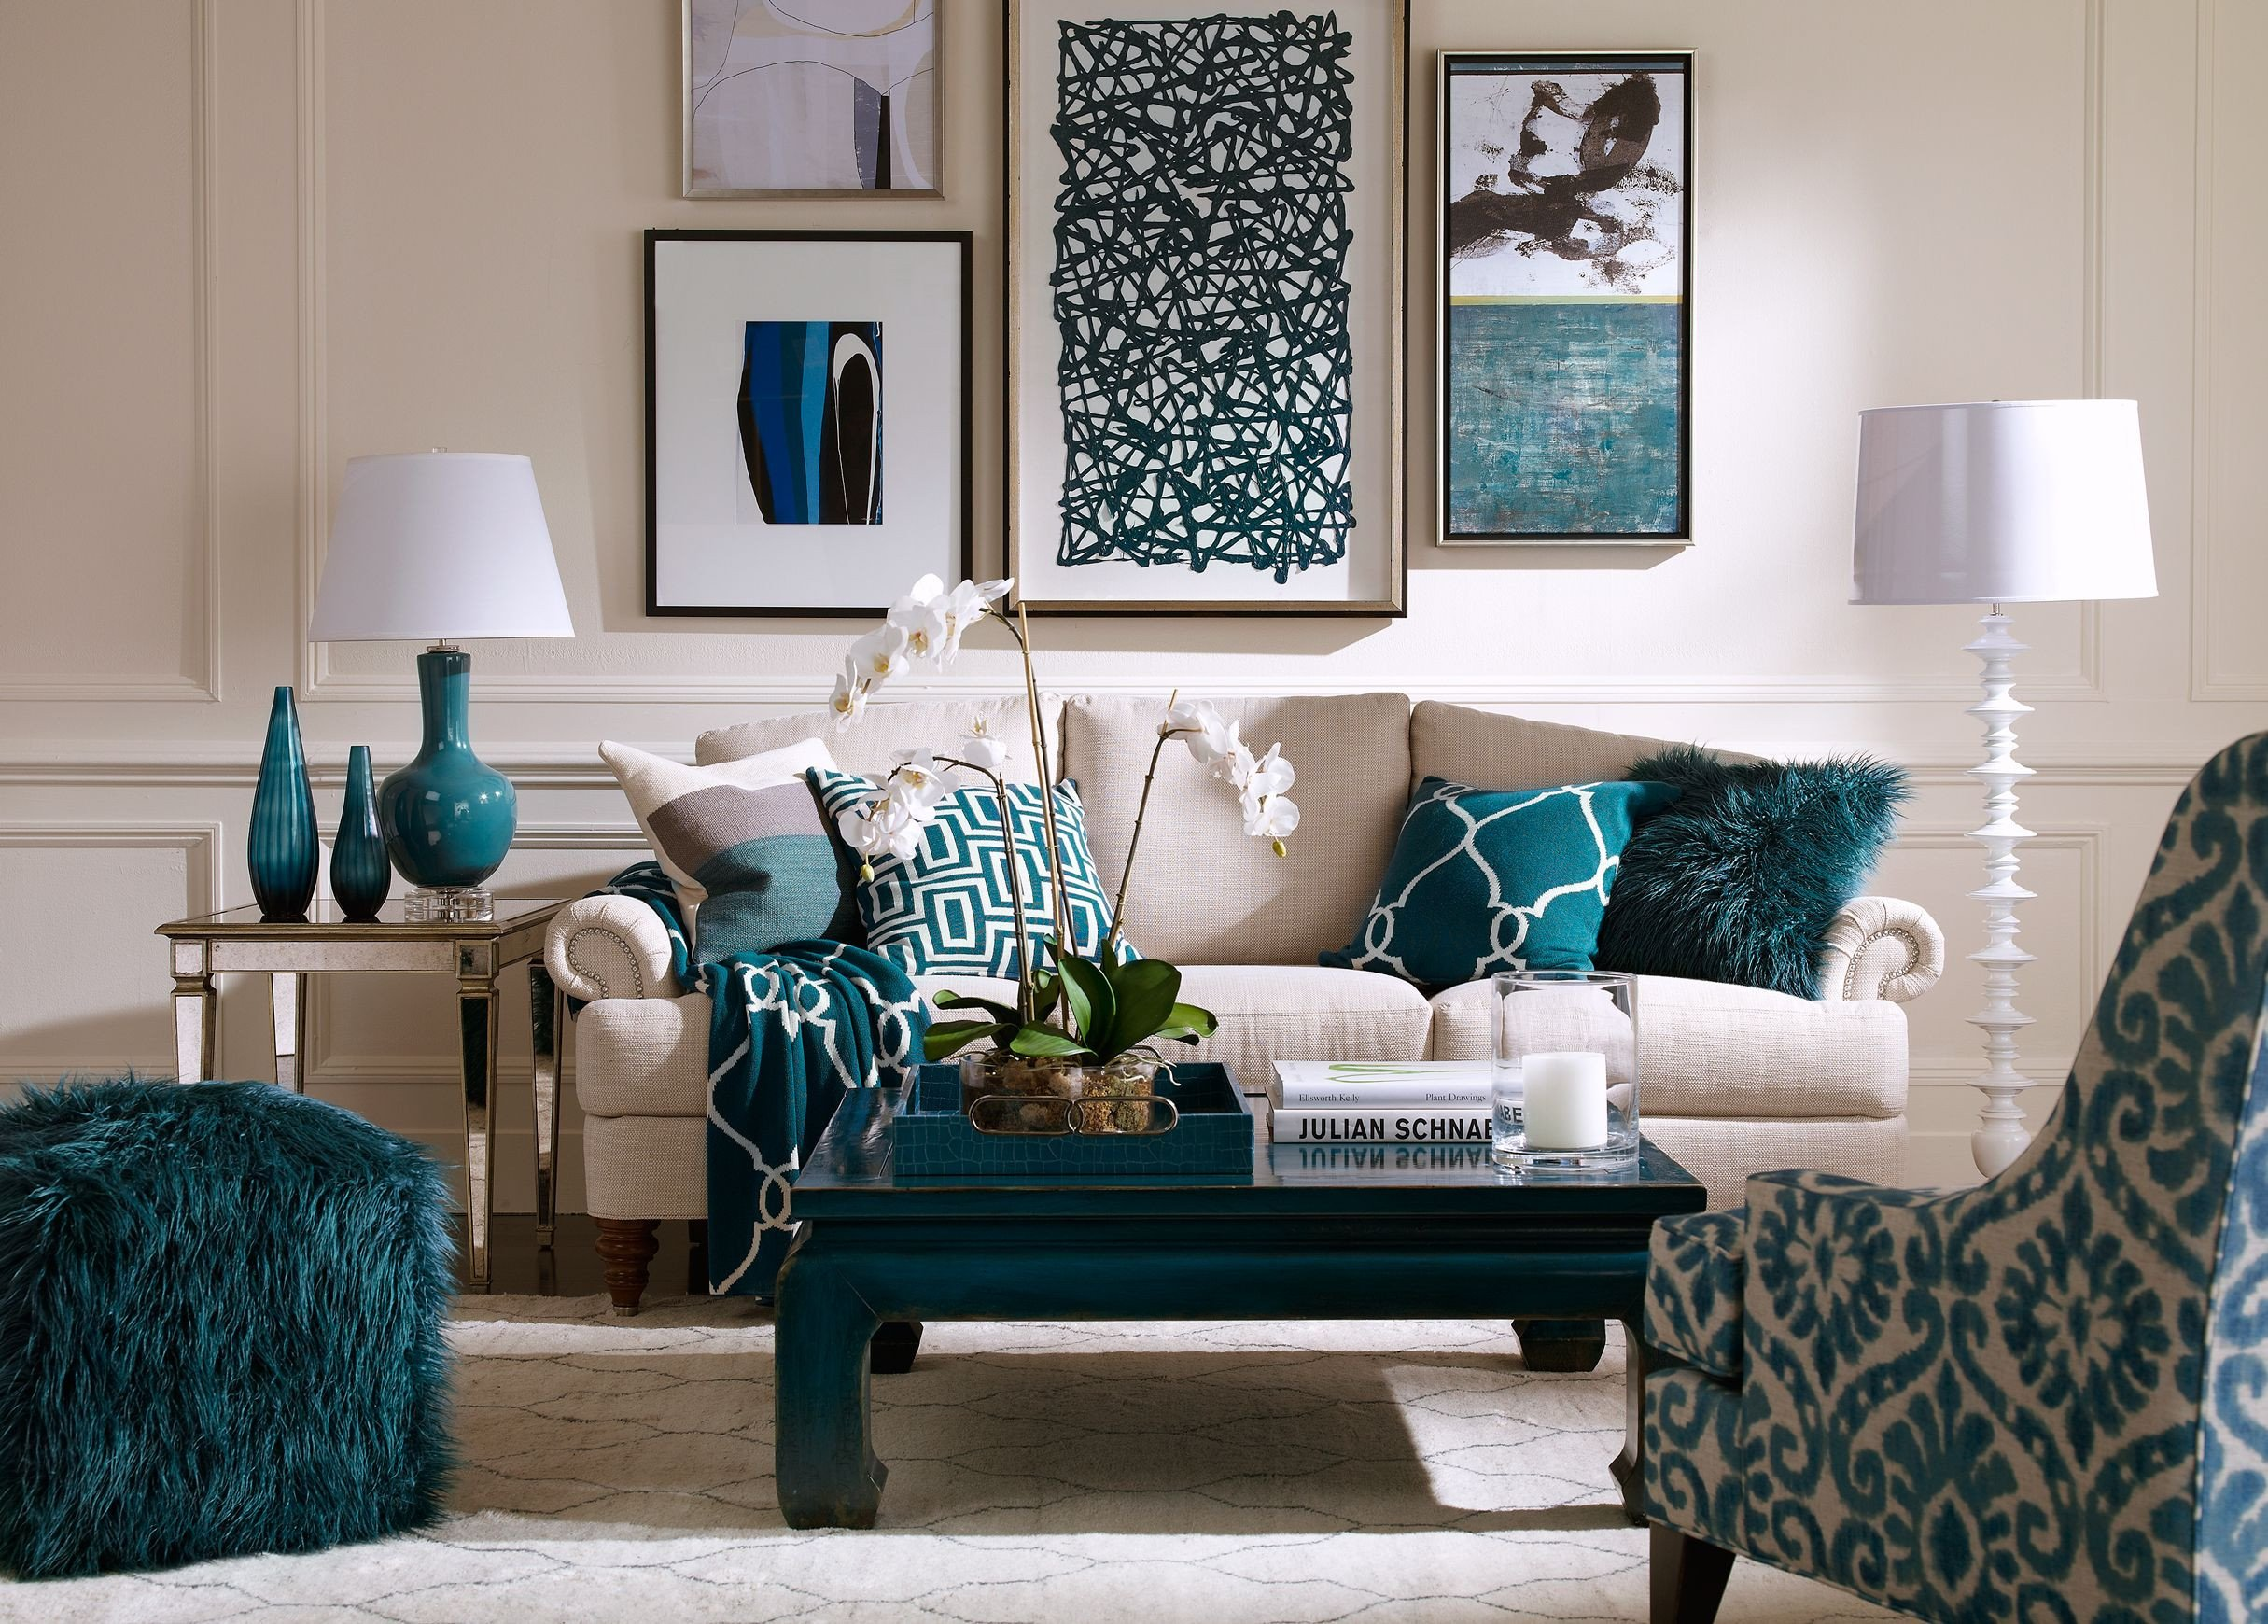 Teal Decor for Living Room Unique Turquoise Dining Room Ideas Turquoise Rooms Turquoise